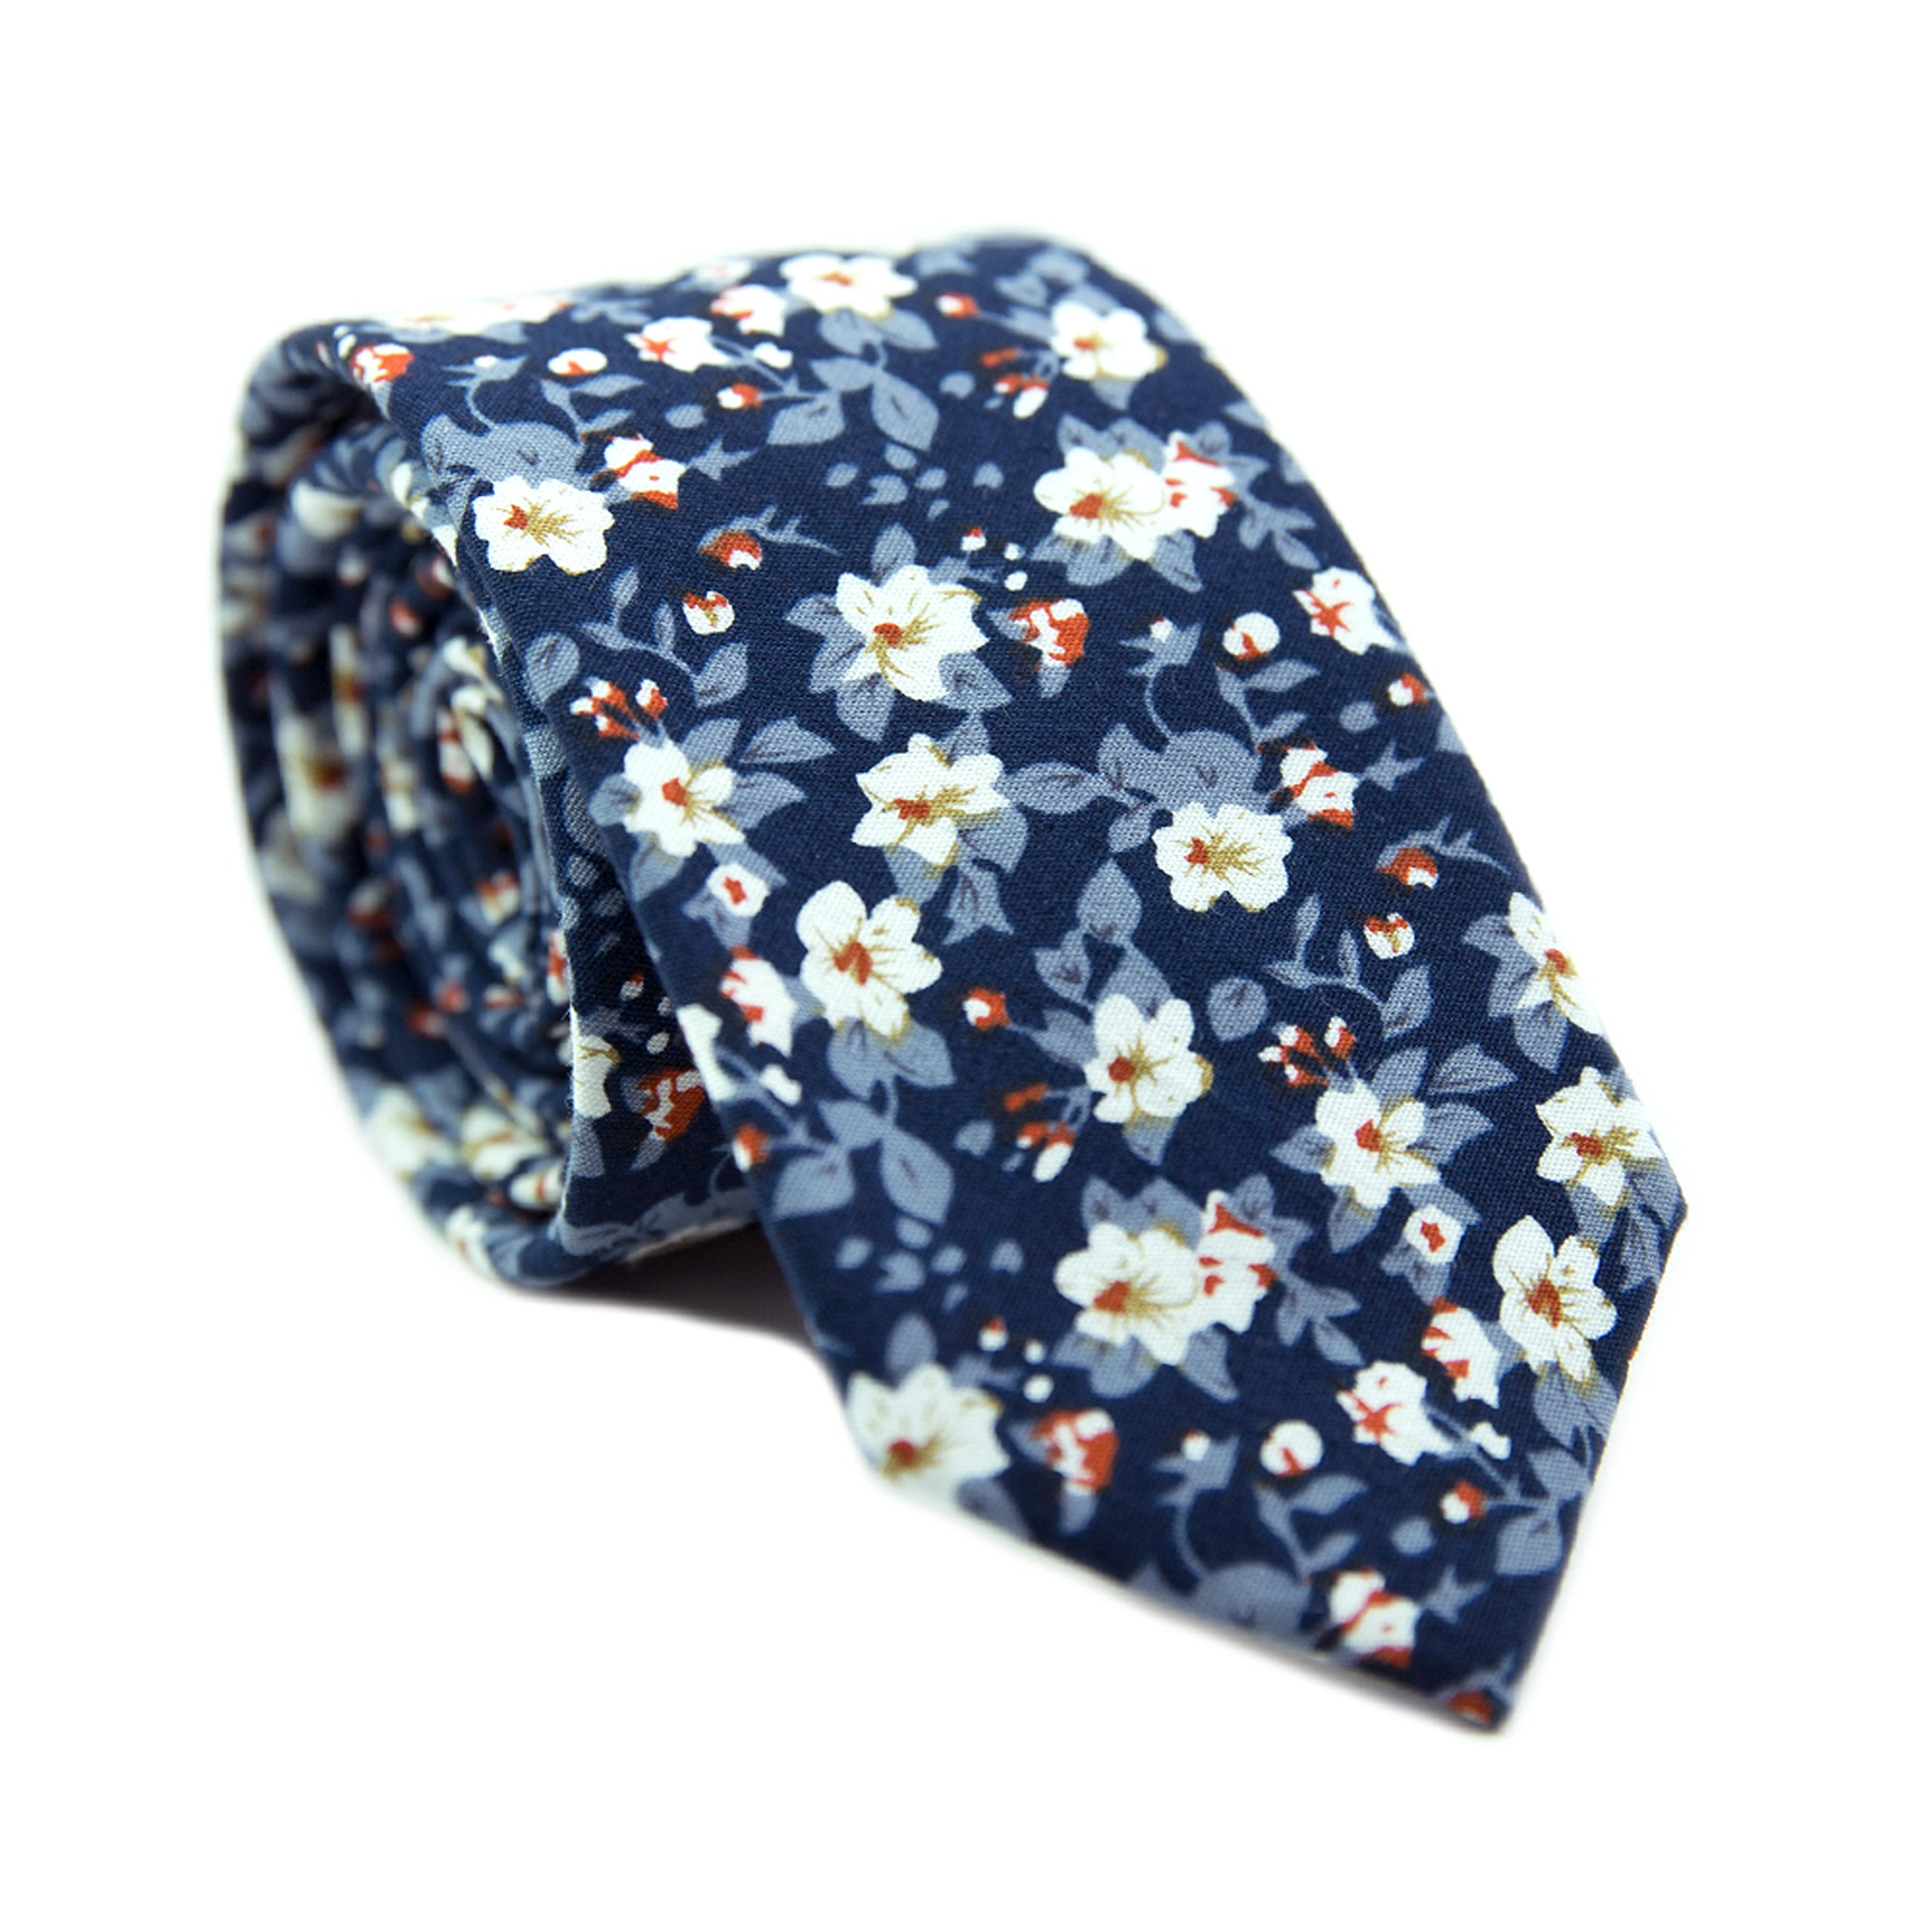 DAZI Men's Skinny Tie Floral Print Cotton Necktie, Great for Weddings, Groom, Groomsmen, Missions, Dances, Gifts. (Blueberry Bliss)